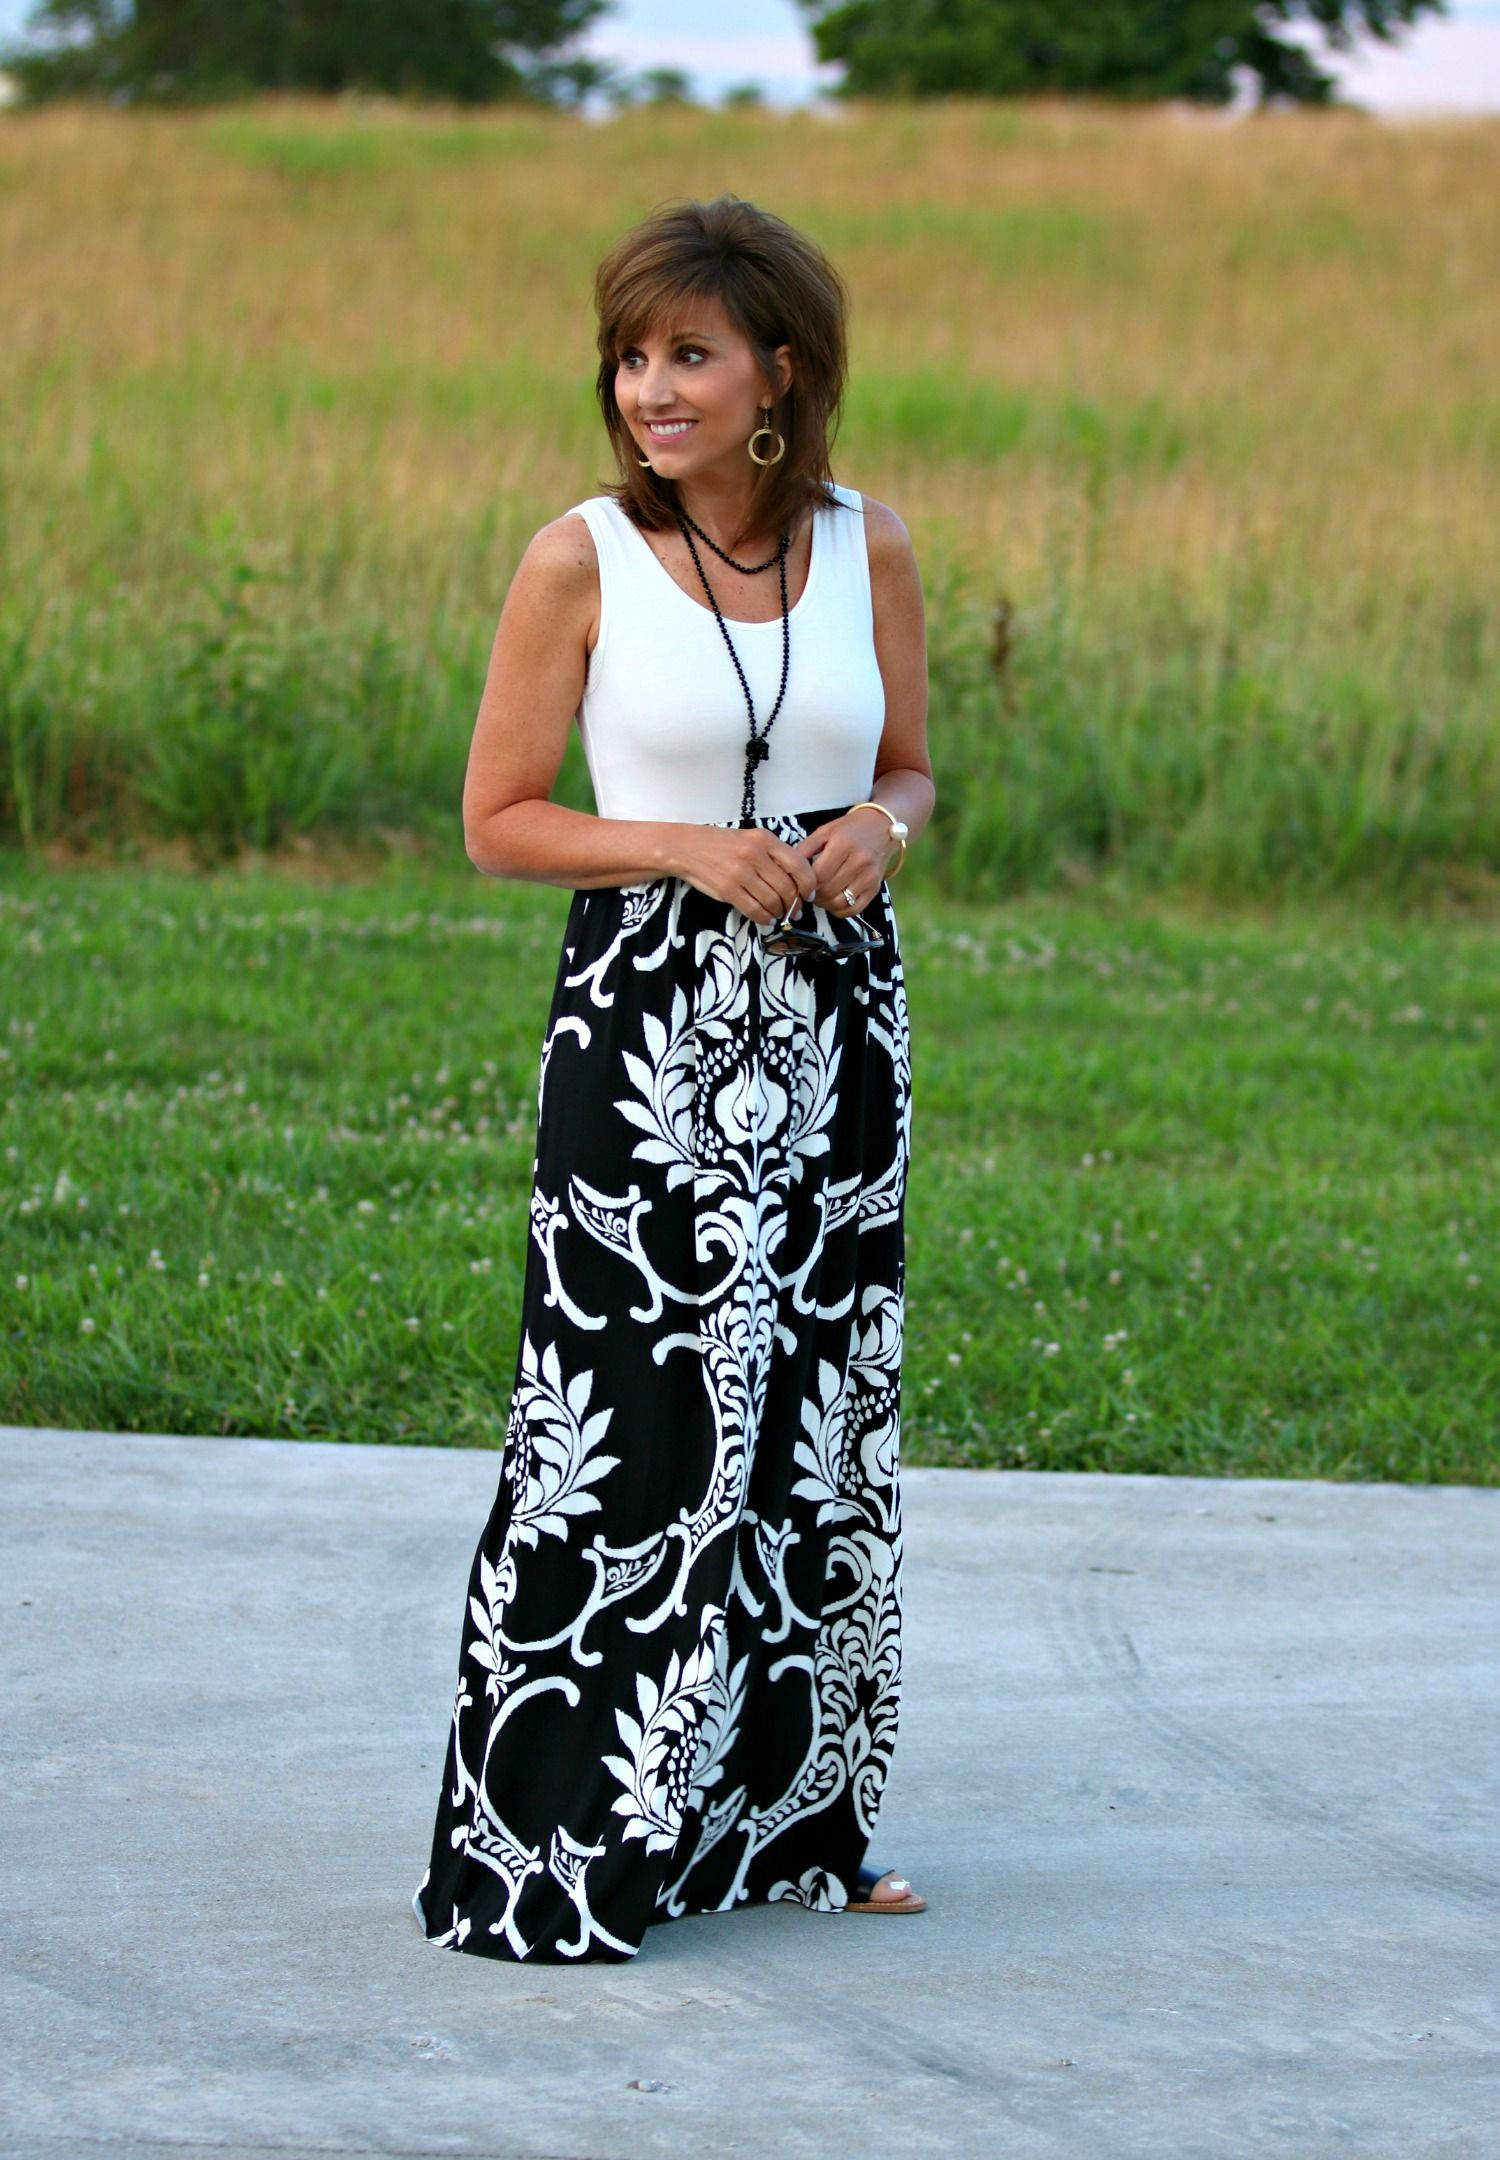 Pretty black and white maxi dress!